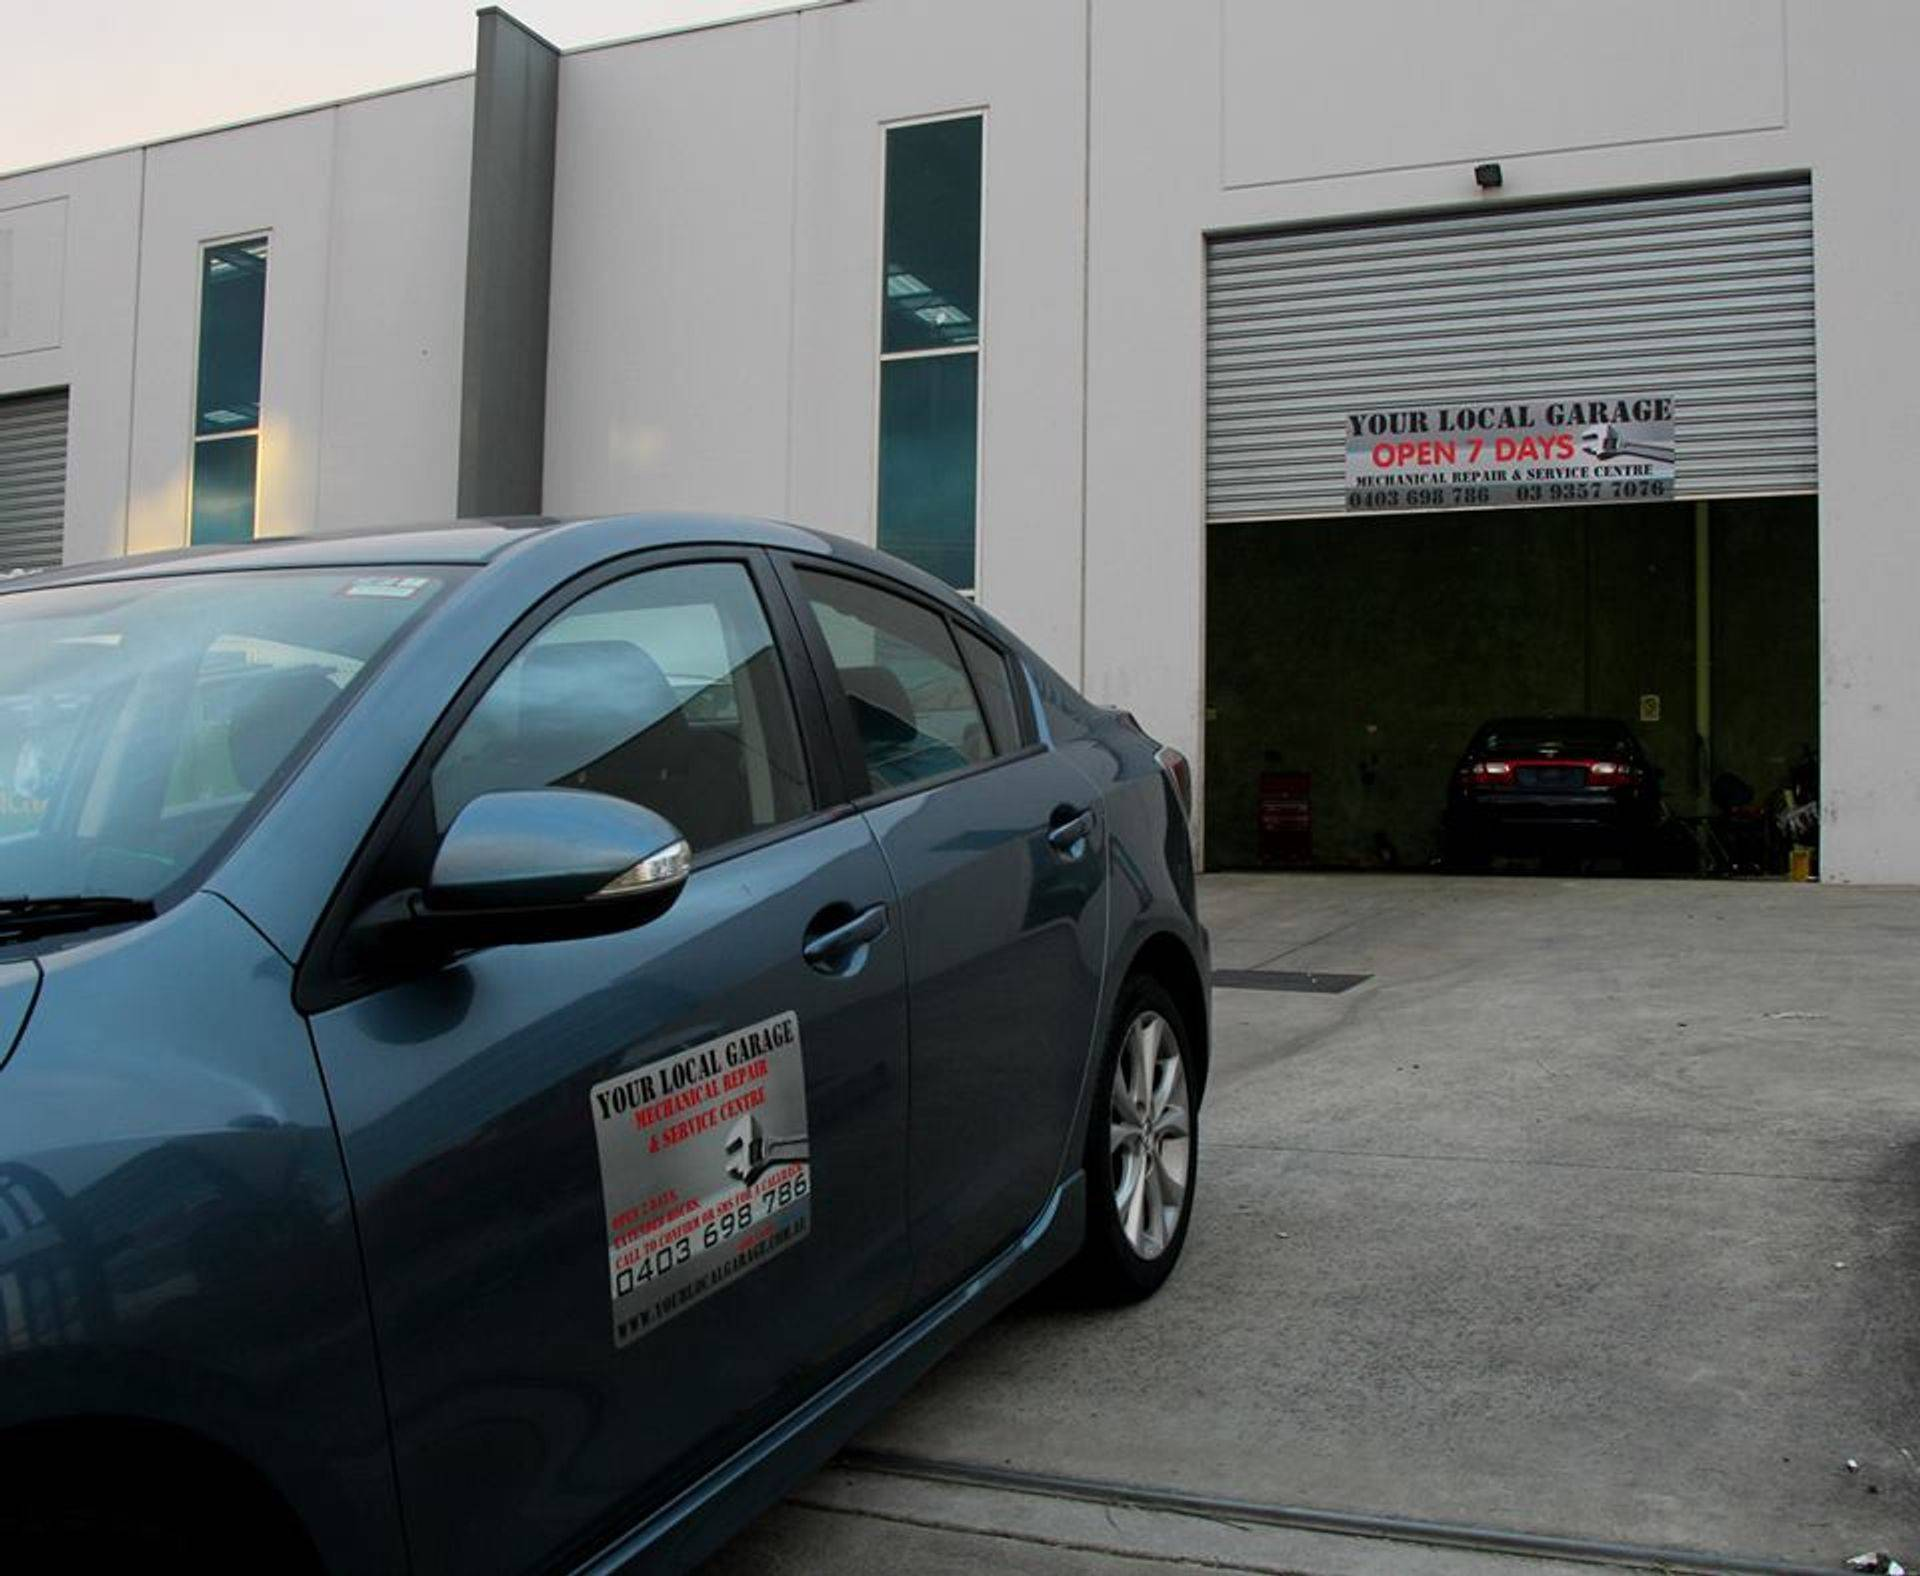 24 Hrs Call Out, Emergency Assistance, Towing, Mechanical Repair, Car Service, Brakes, Clutches.